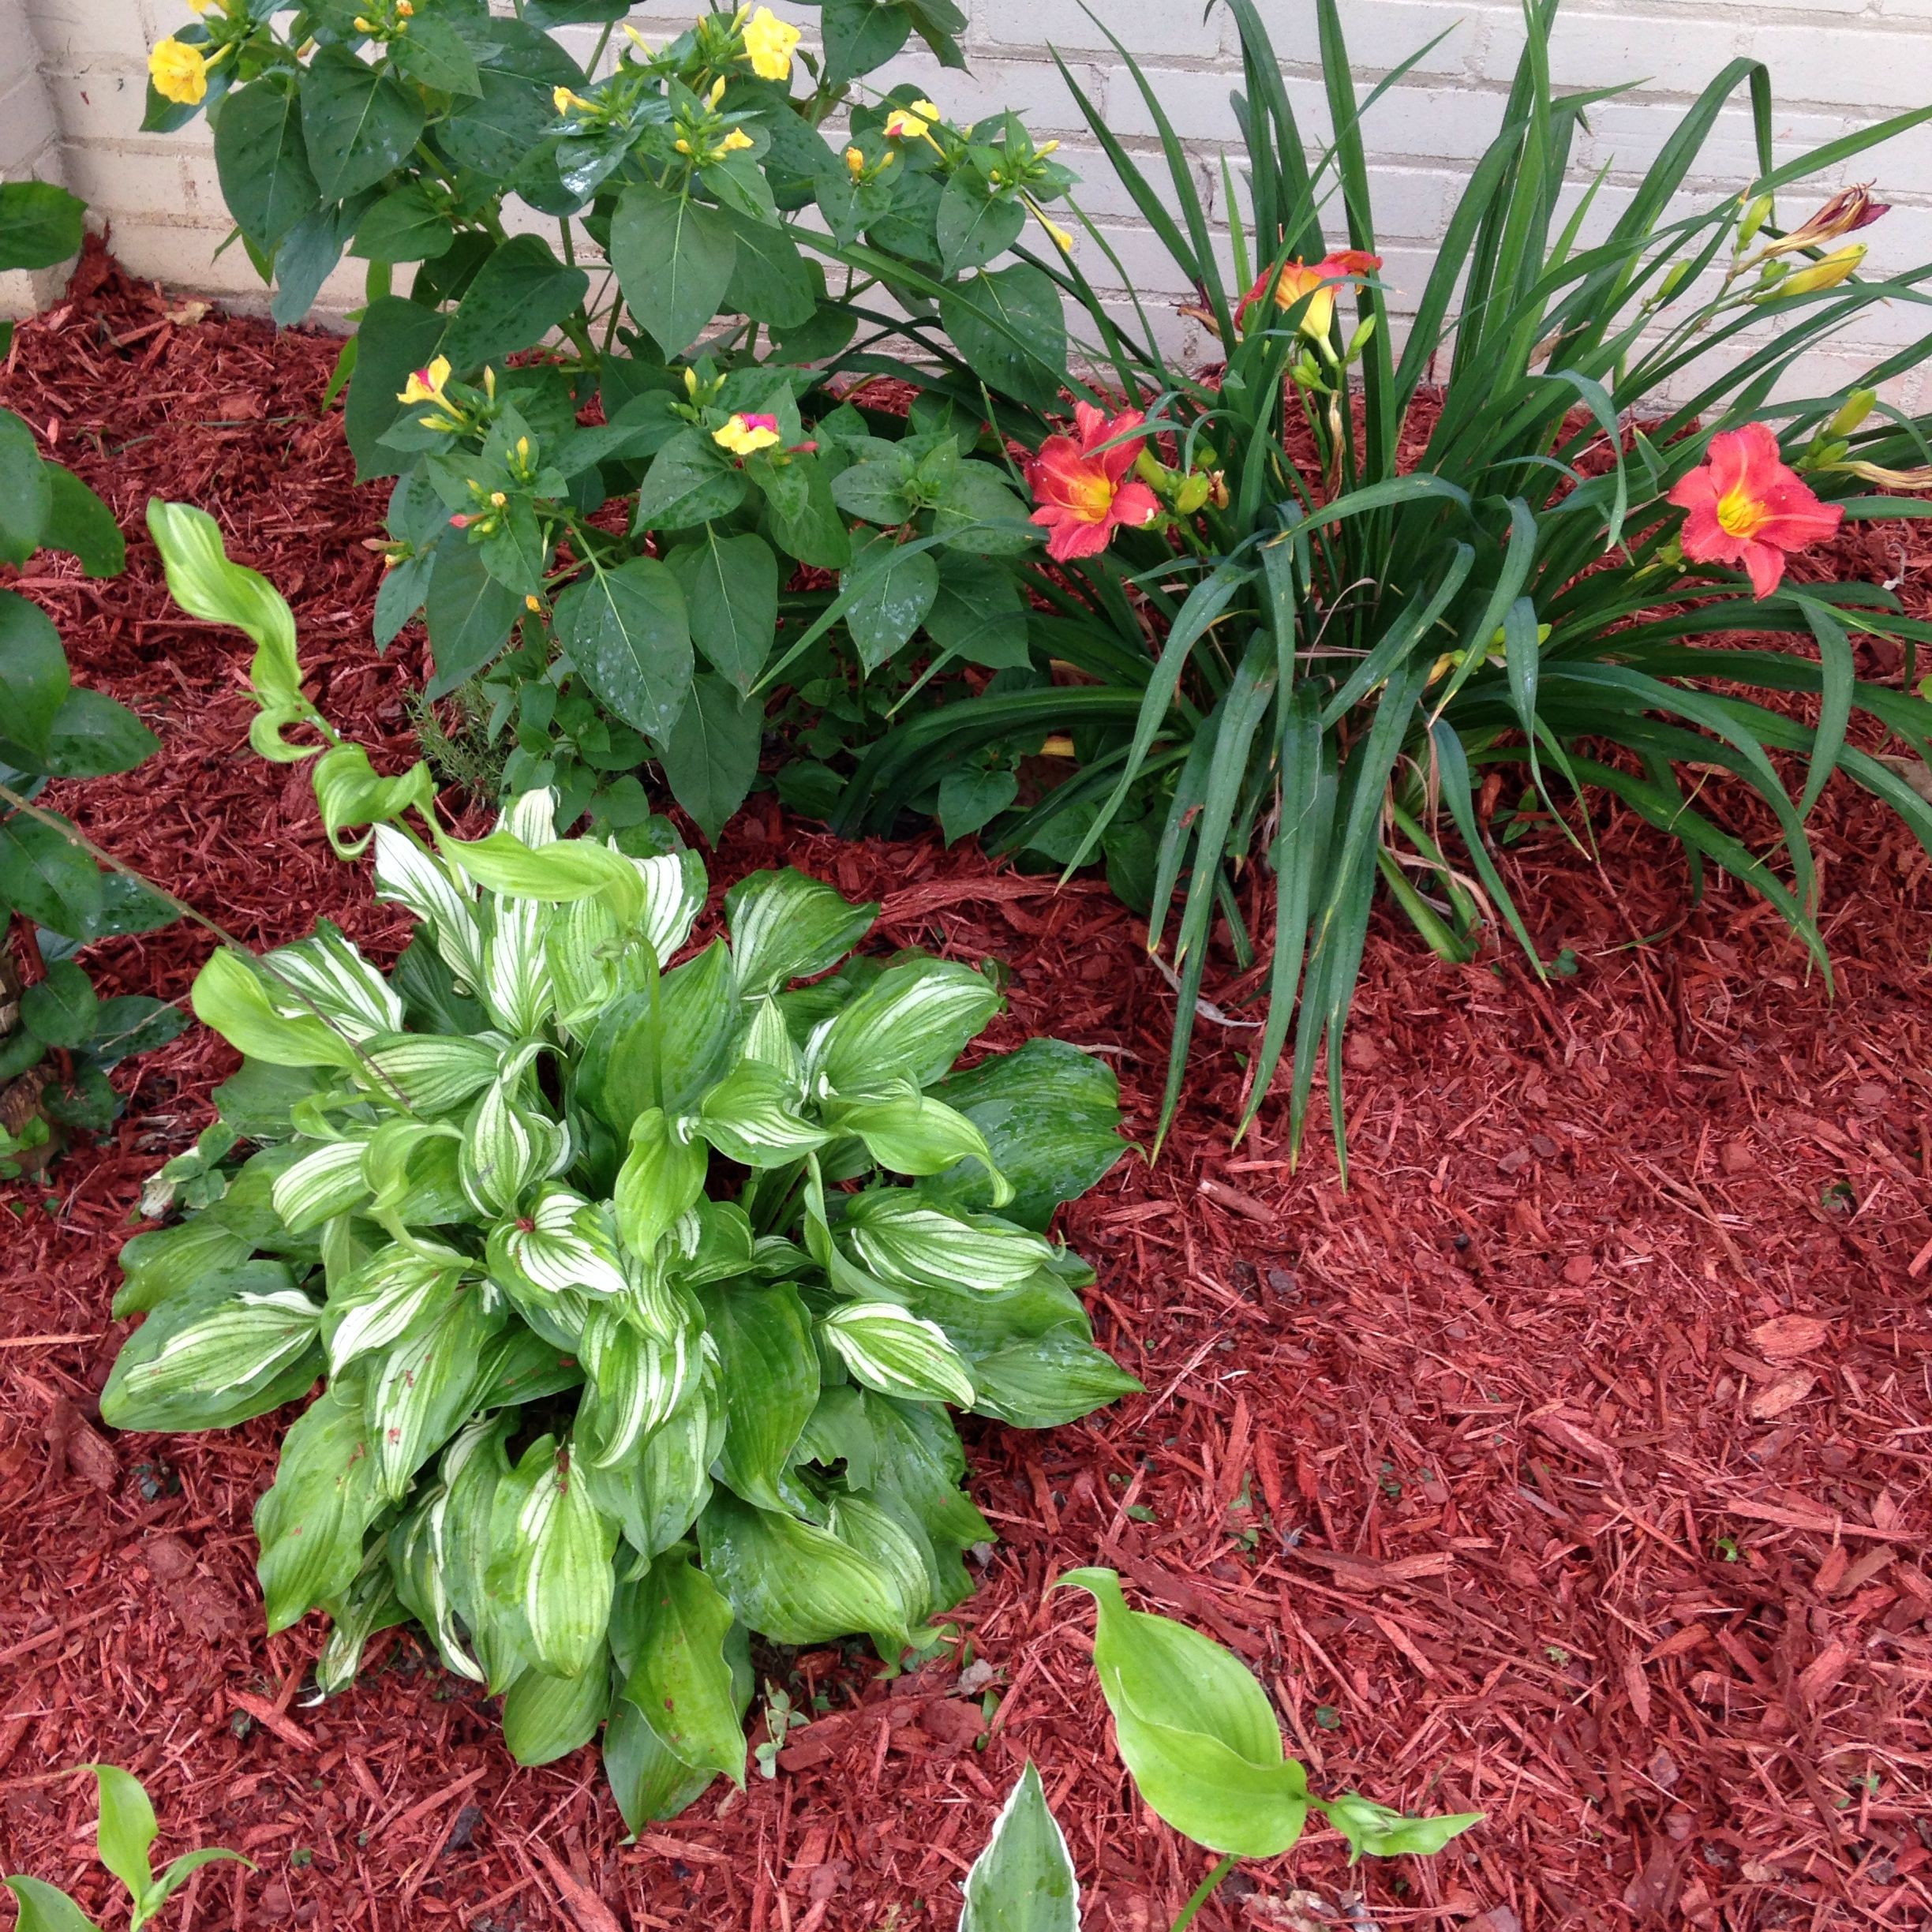 Hostas is a wonderful low maintenance plant that is perfect for shaded beds. Easy to spread and grow!